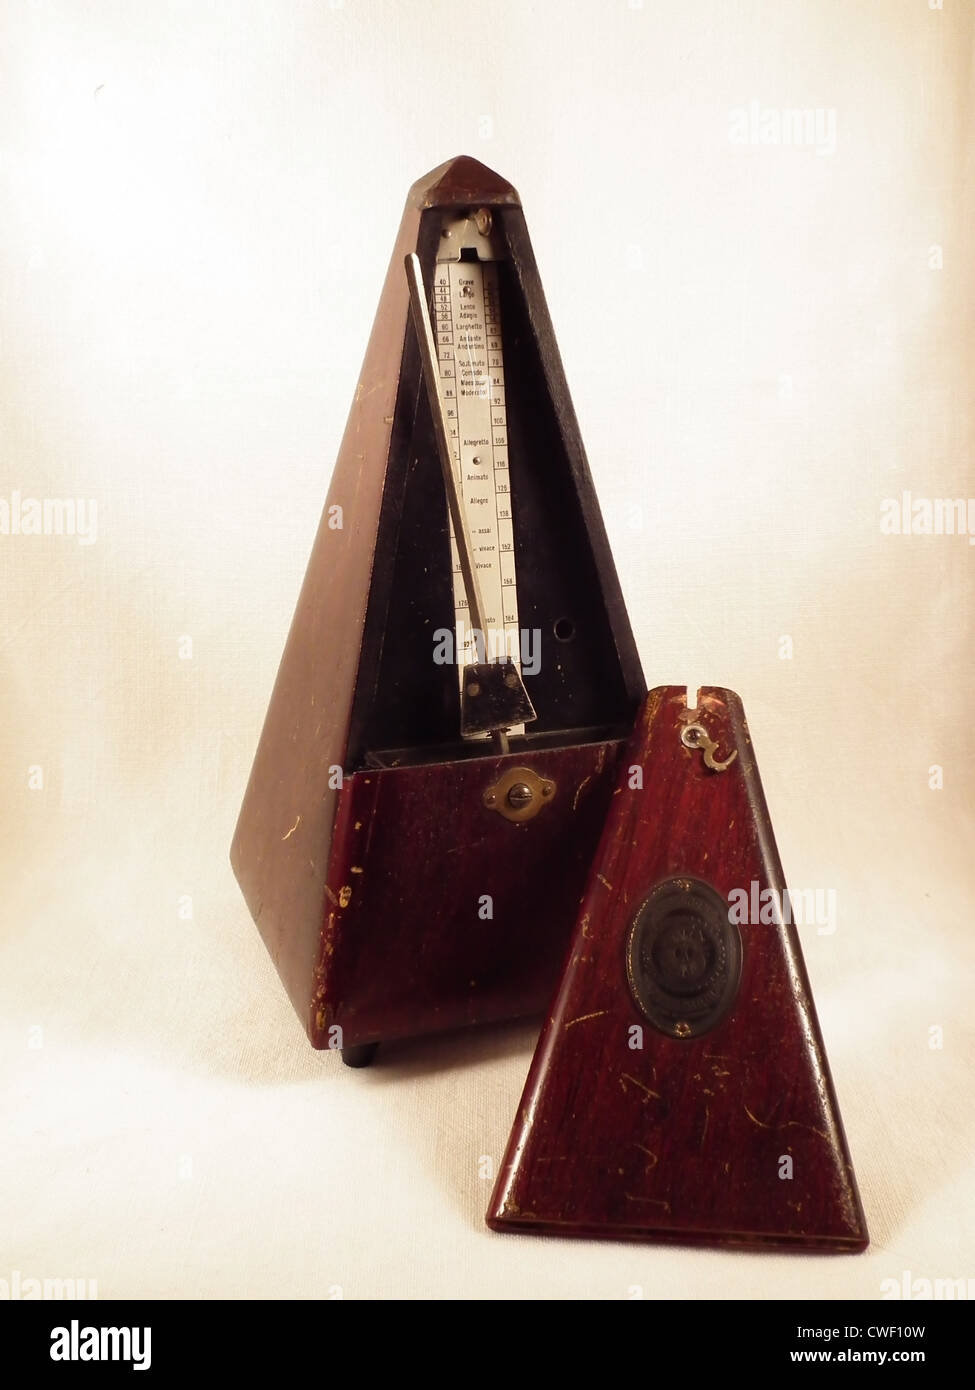 An old and wooden metronome from the collection of my parents - Stock Image